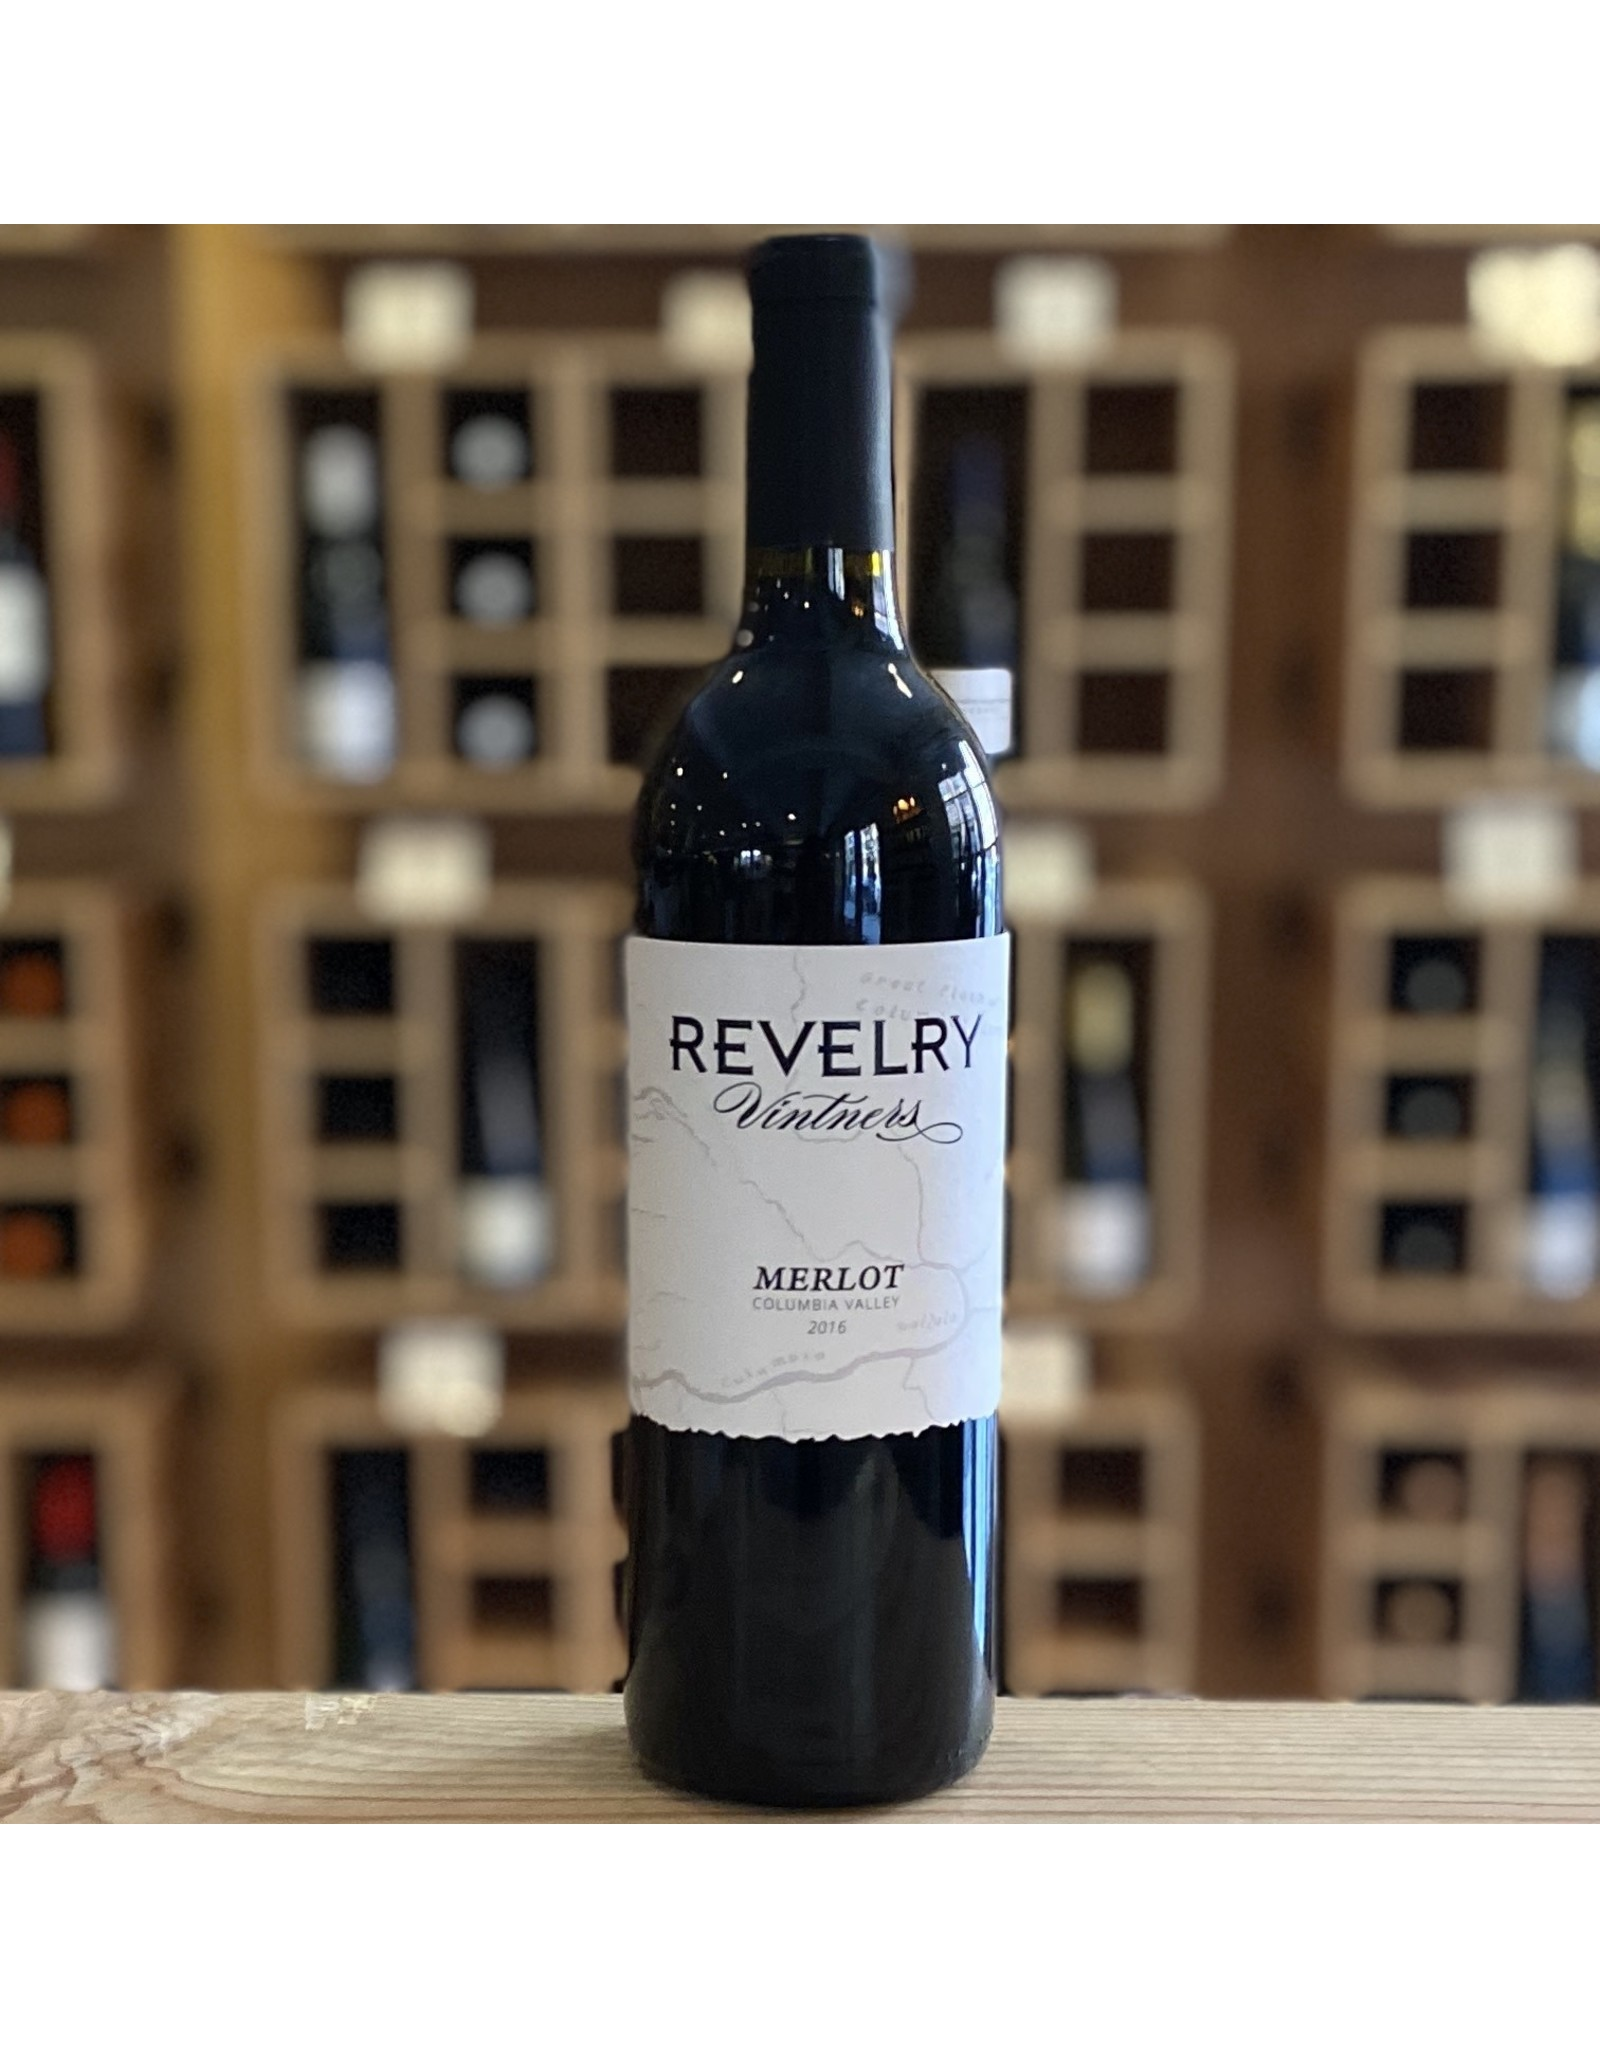 Washington Revelry Vintners Merlot 2017 - Columbia Valley, Washington